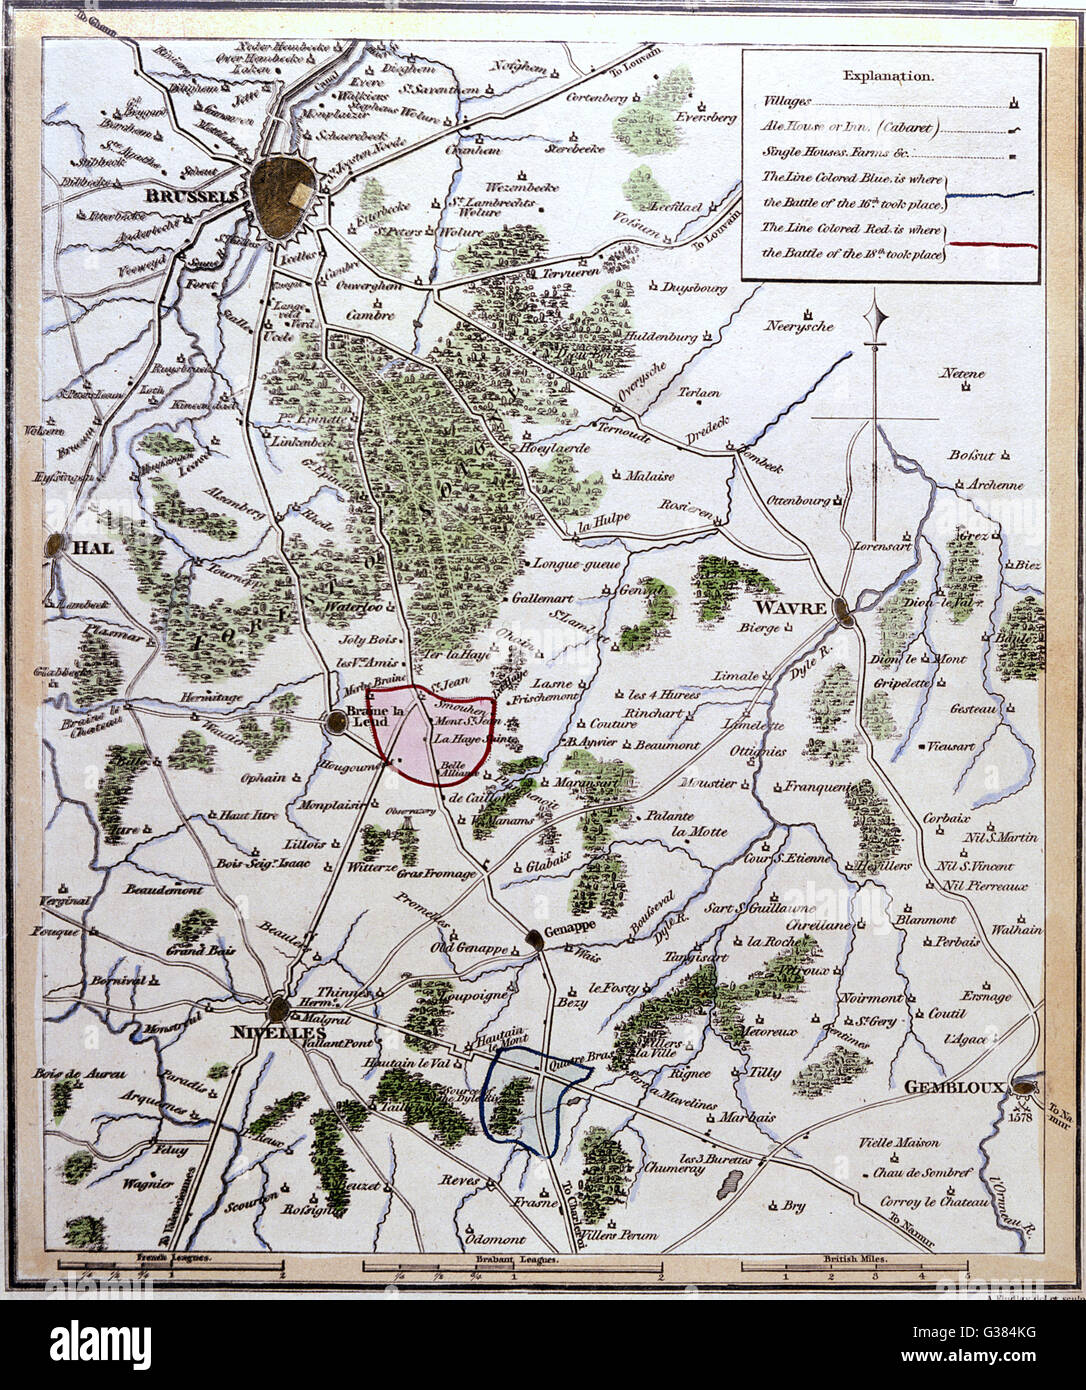 Map showing Quatre Bras and Waterloo at the time of the battle.       Date: 16-18 June 1815 - Stock Image